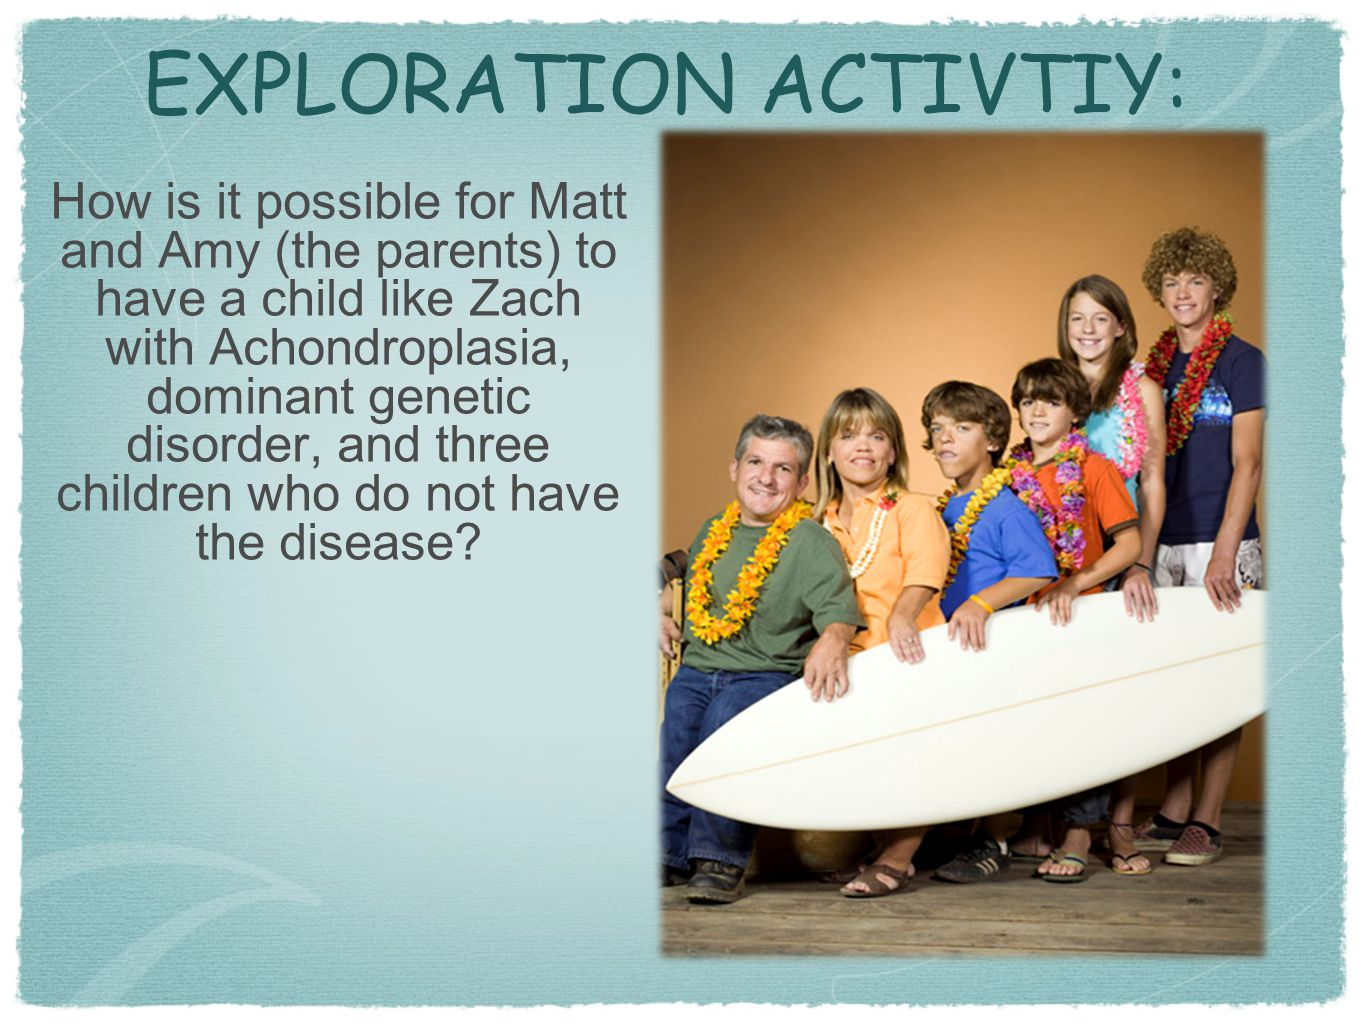 EXPLORATION ACTIVTIY: How is it possible for Matt and Amy (the parents) to have a child like Zach with Achondroplasia, dominant genetic disorder, and